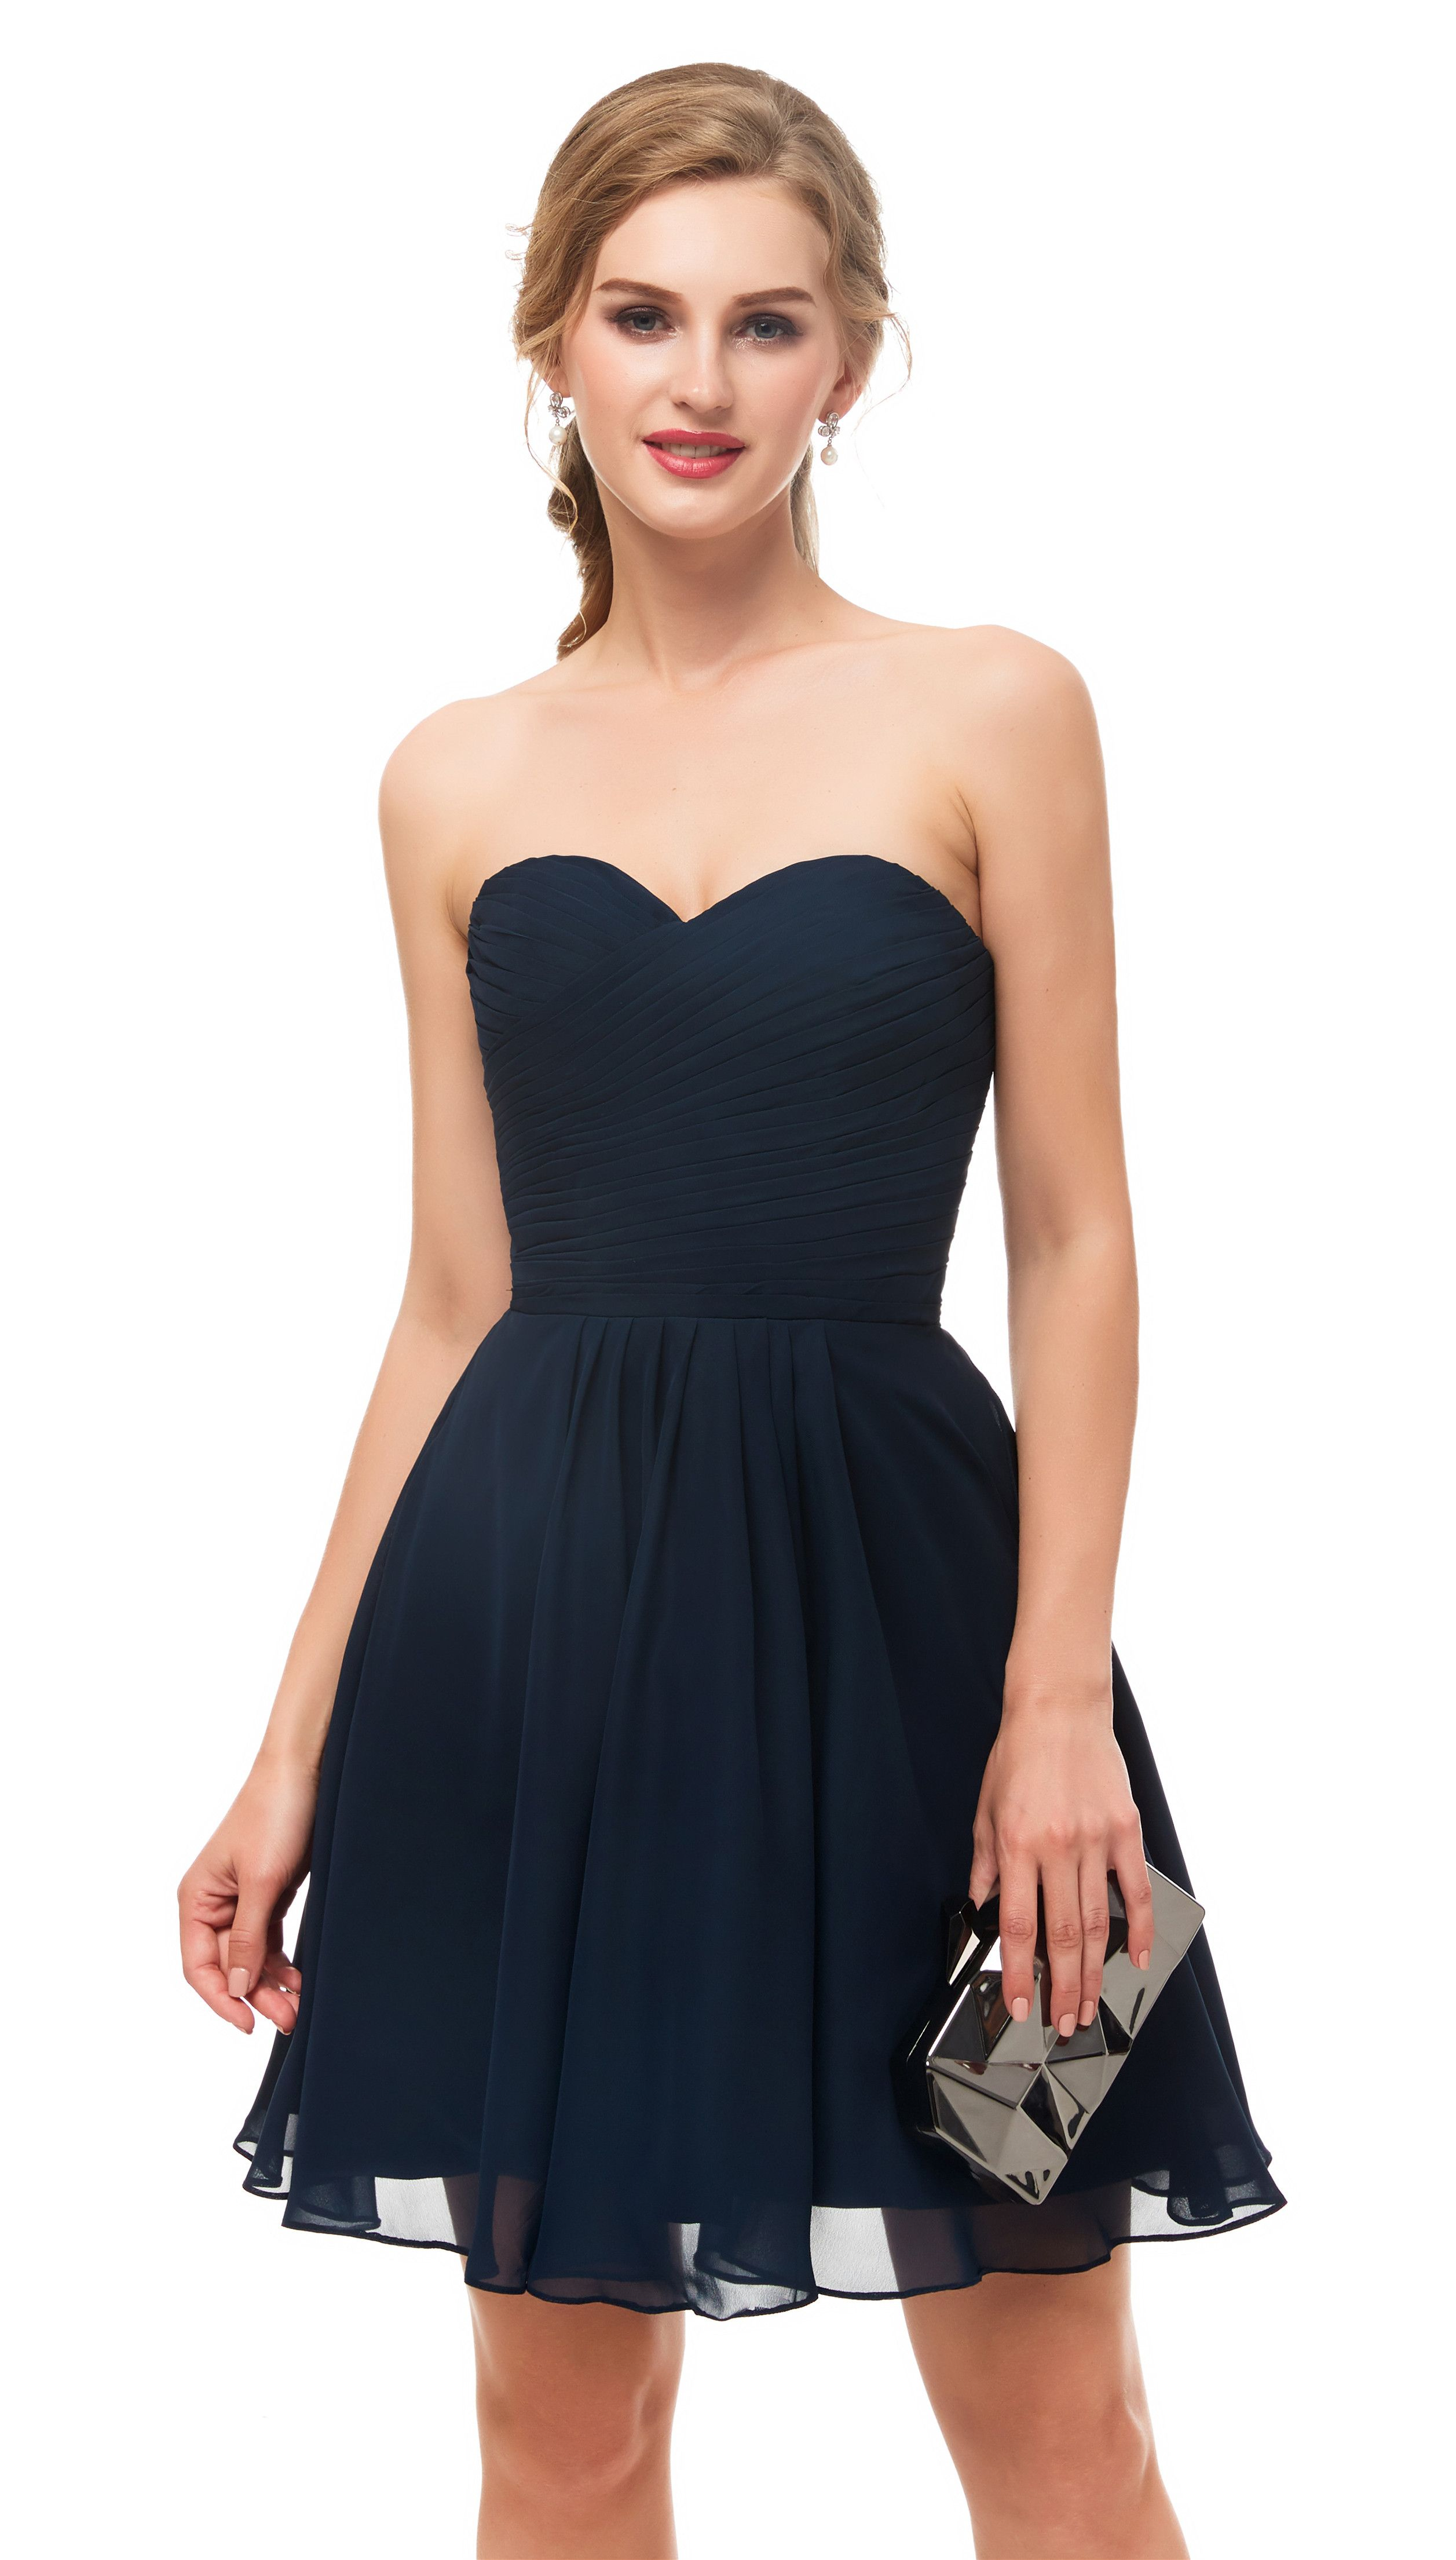 Classic sweetheart navy blue chiffon prom dress in liked by